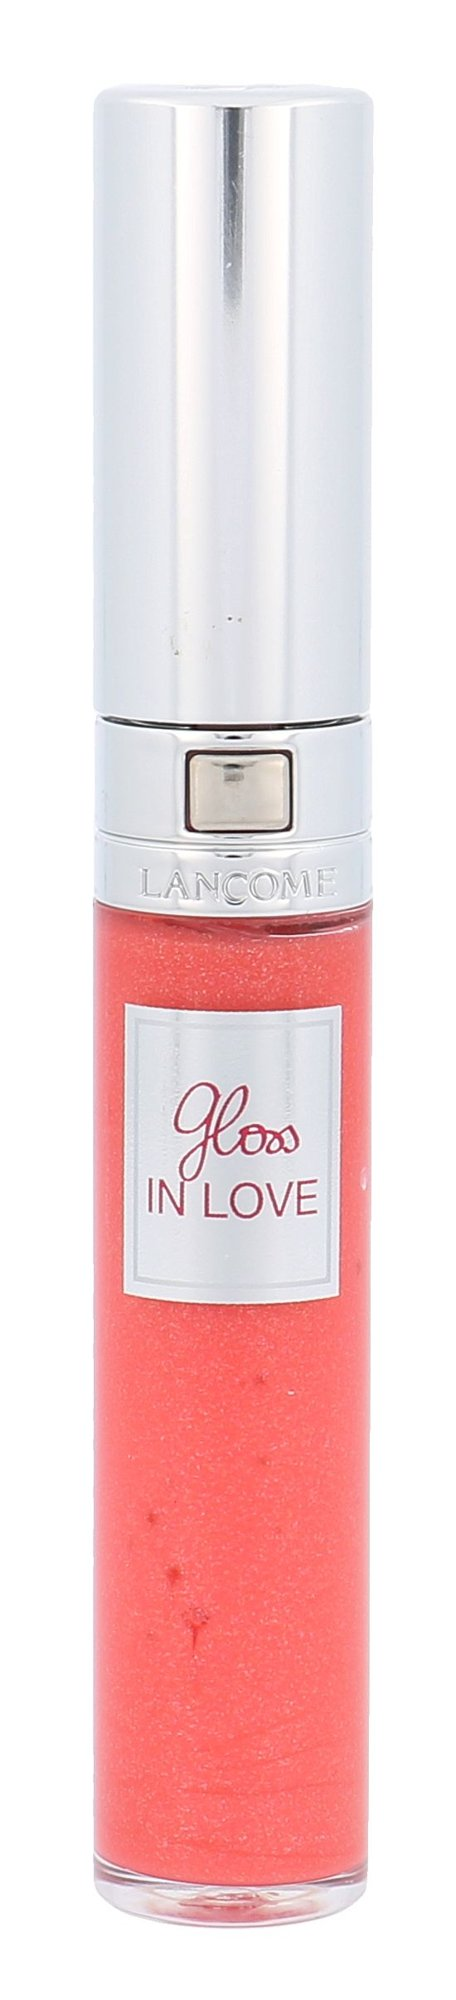 Lancôme Gloss In Love Cosmetic 6ml 144